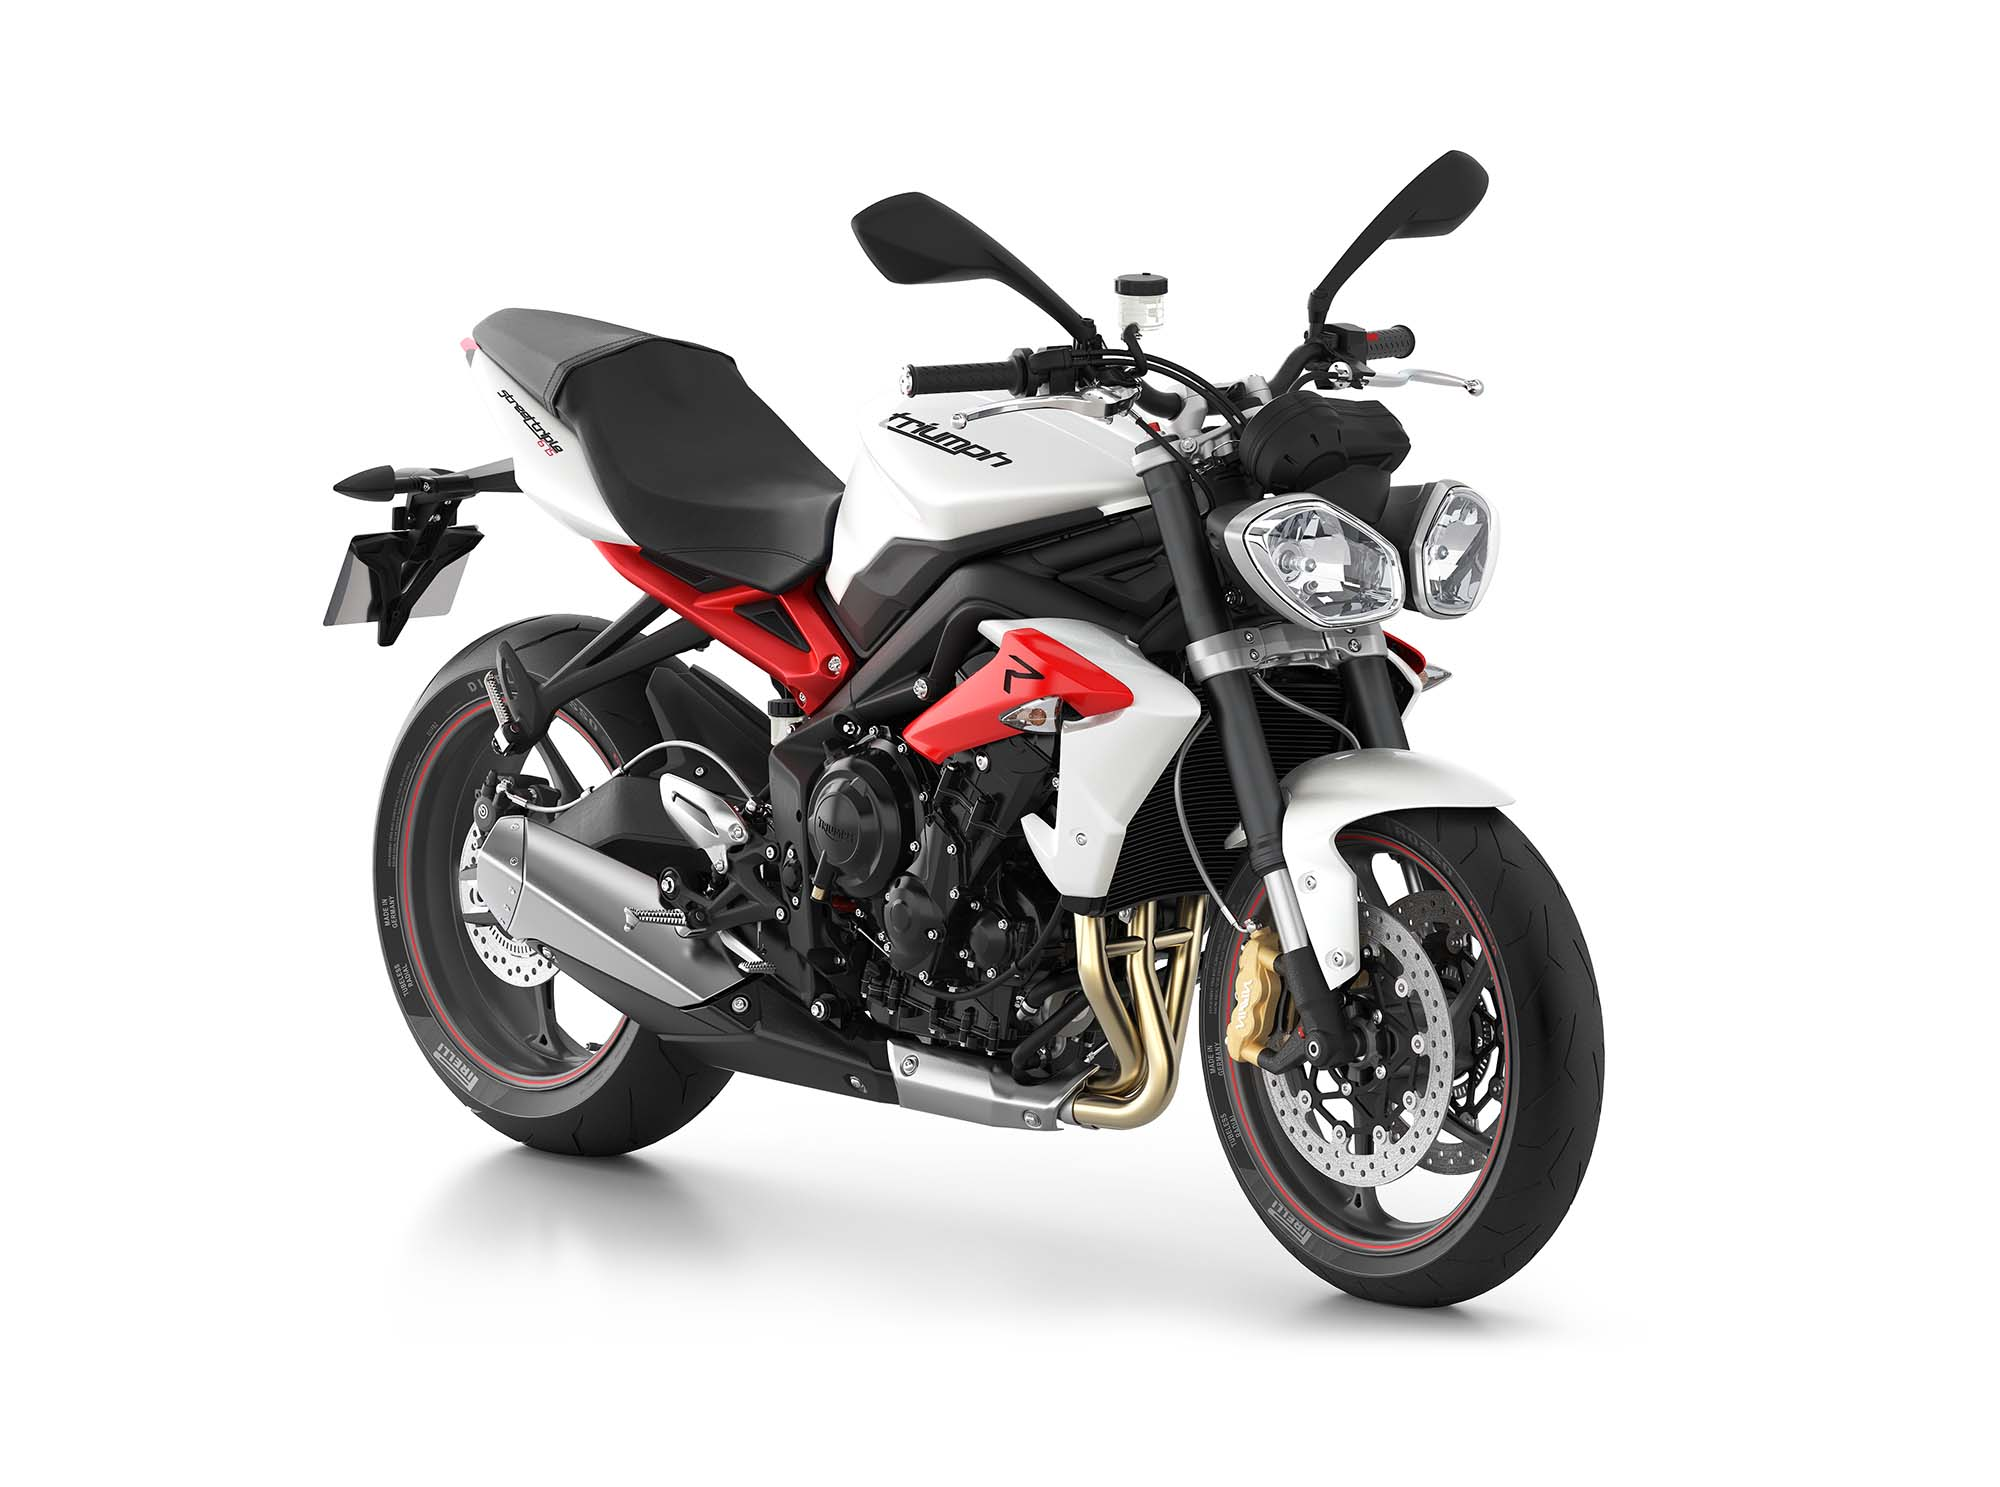 2013 Triumph Street Triple R Loses Weight Looks Hotter